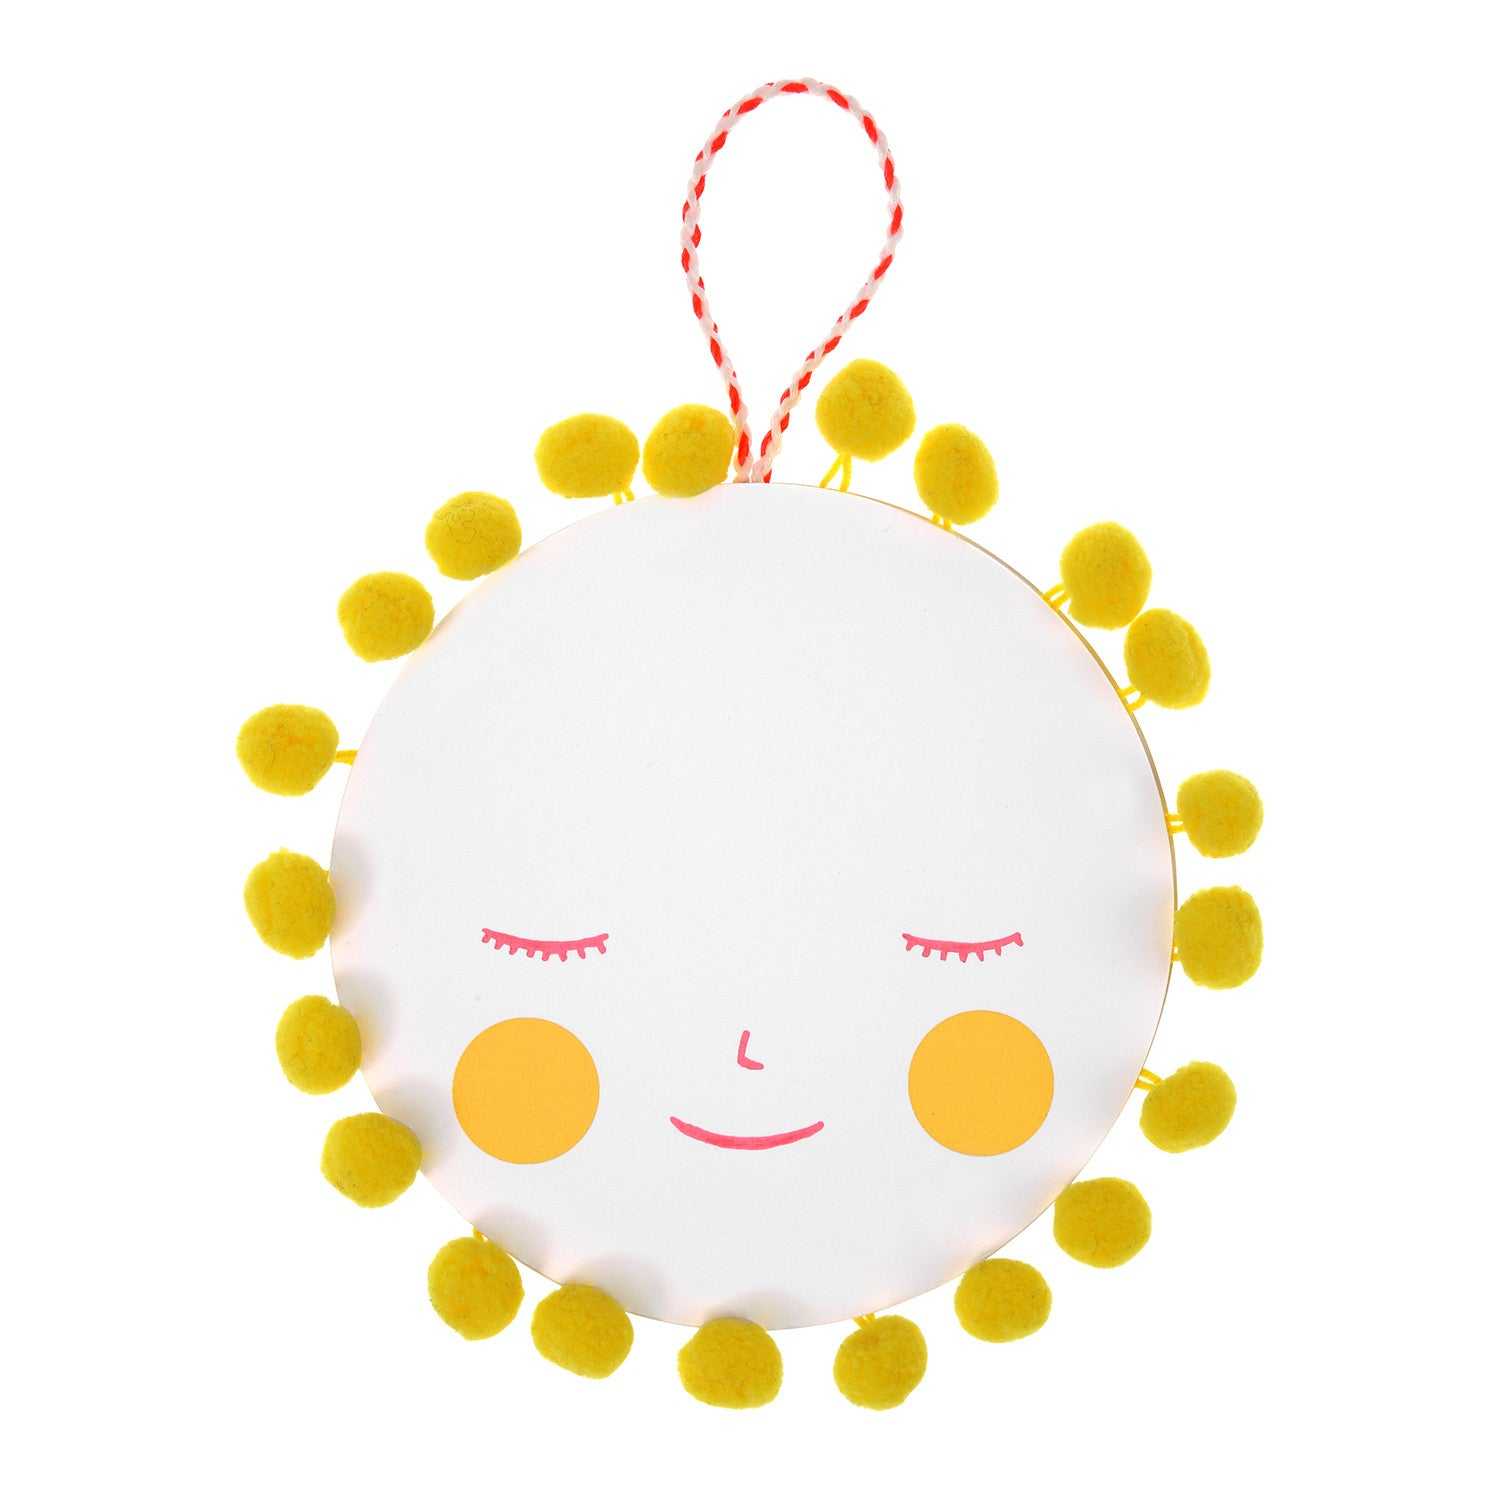 Sun Pom Pom Hanging Mobile Baby Greeting Card - Meri Meri - Little Citizens Boutique  - 1